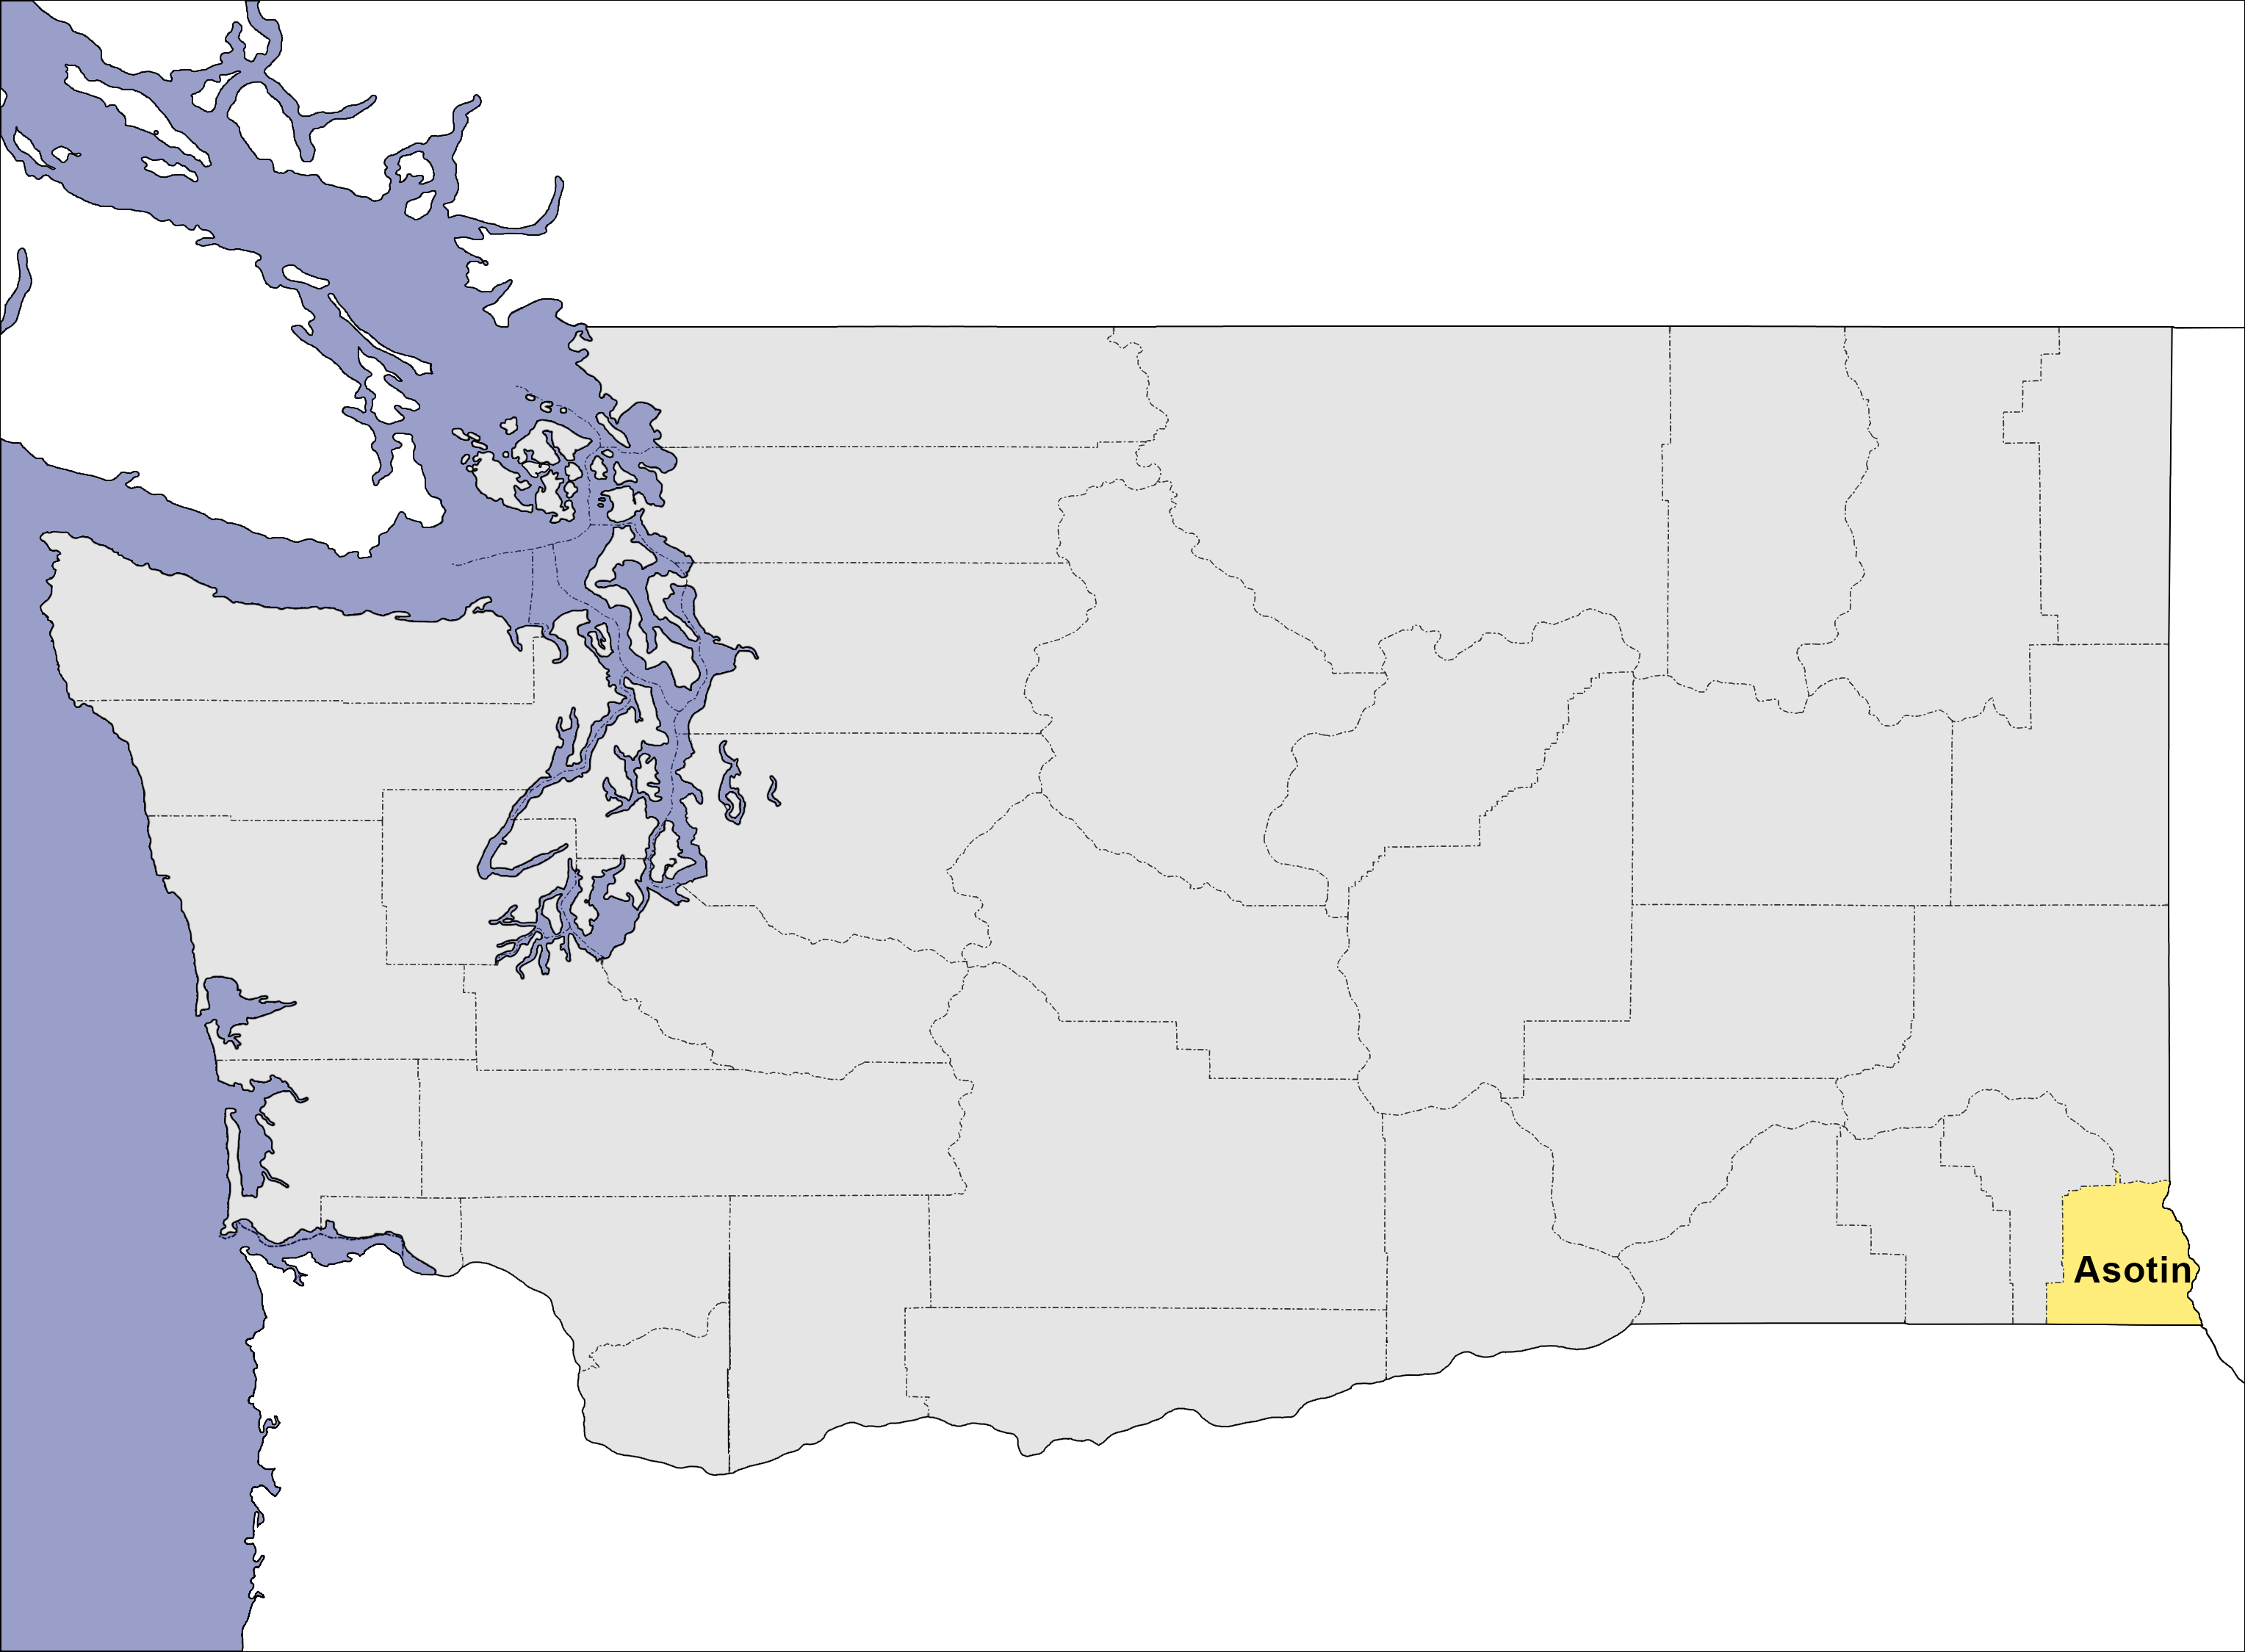 asotin county Washington state university asotin county extension connects the people of asotin county to the research and knowledge bases of the state's land grand research university providing solutions.